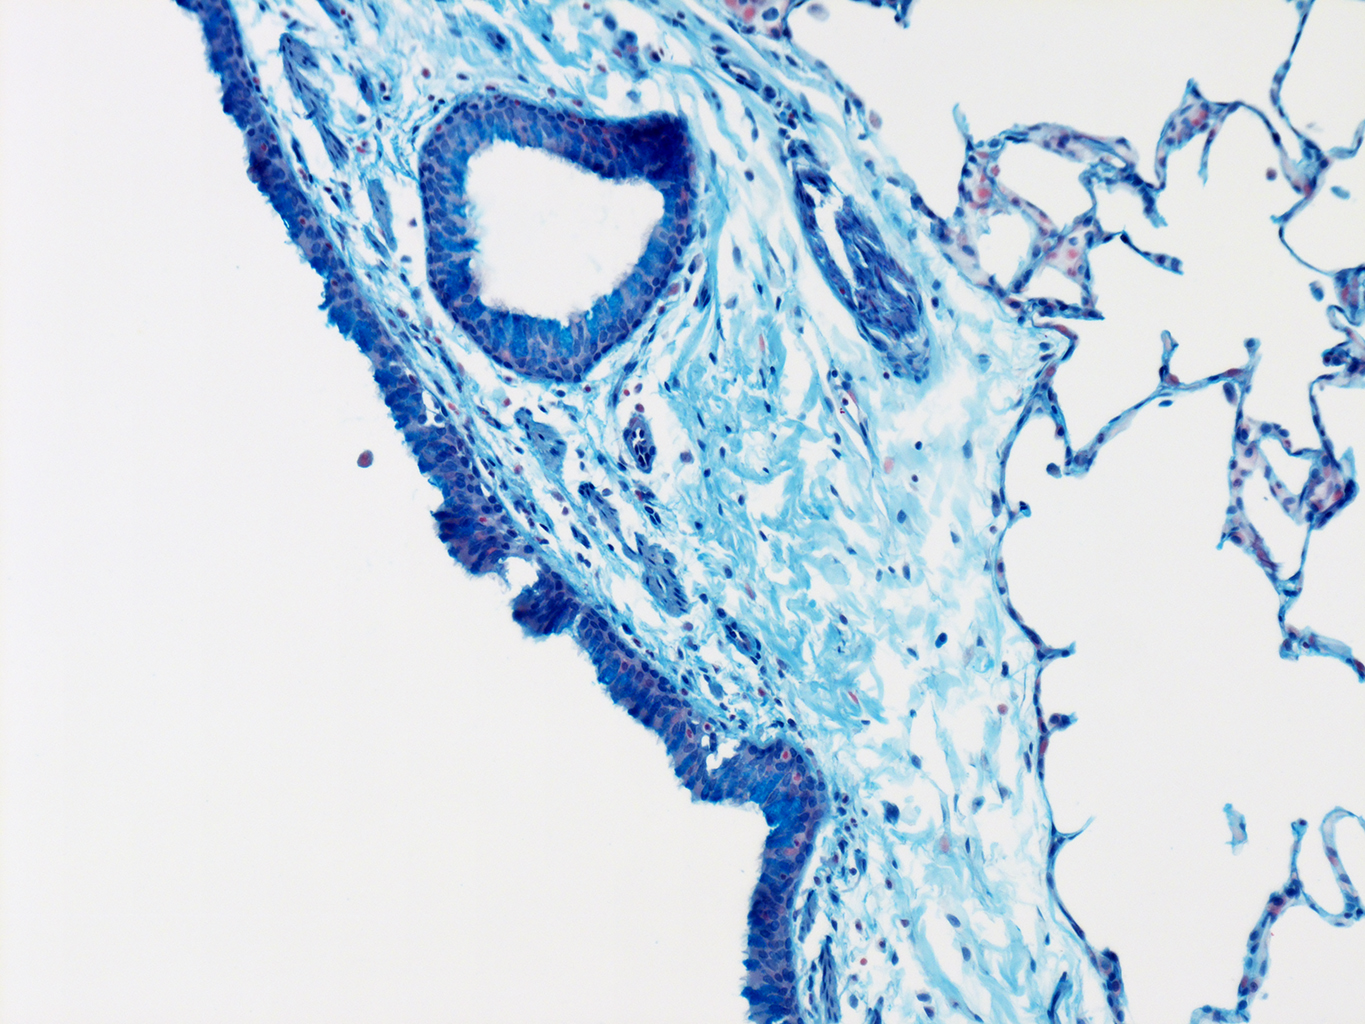 AB Staining of 14 Month-Old Human Lung from Donor D072-RLL-14B2